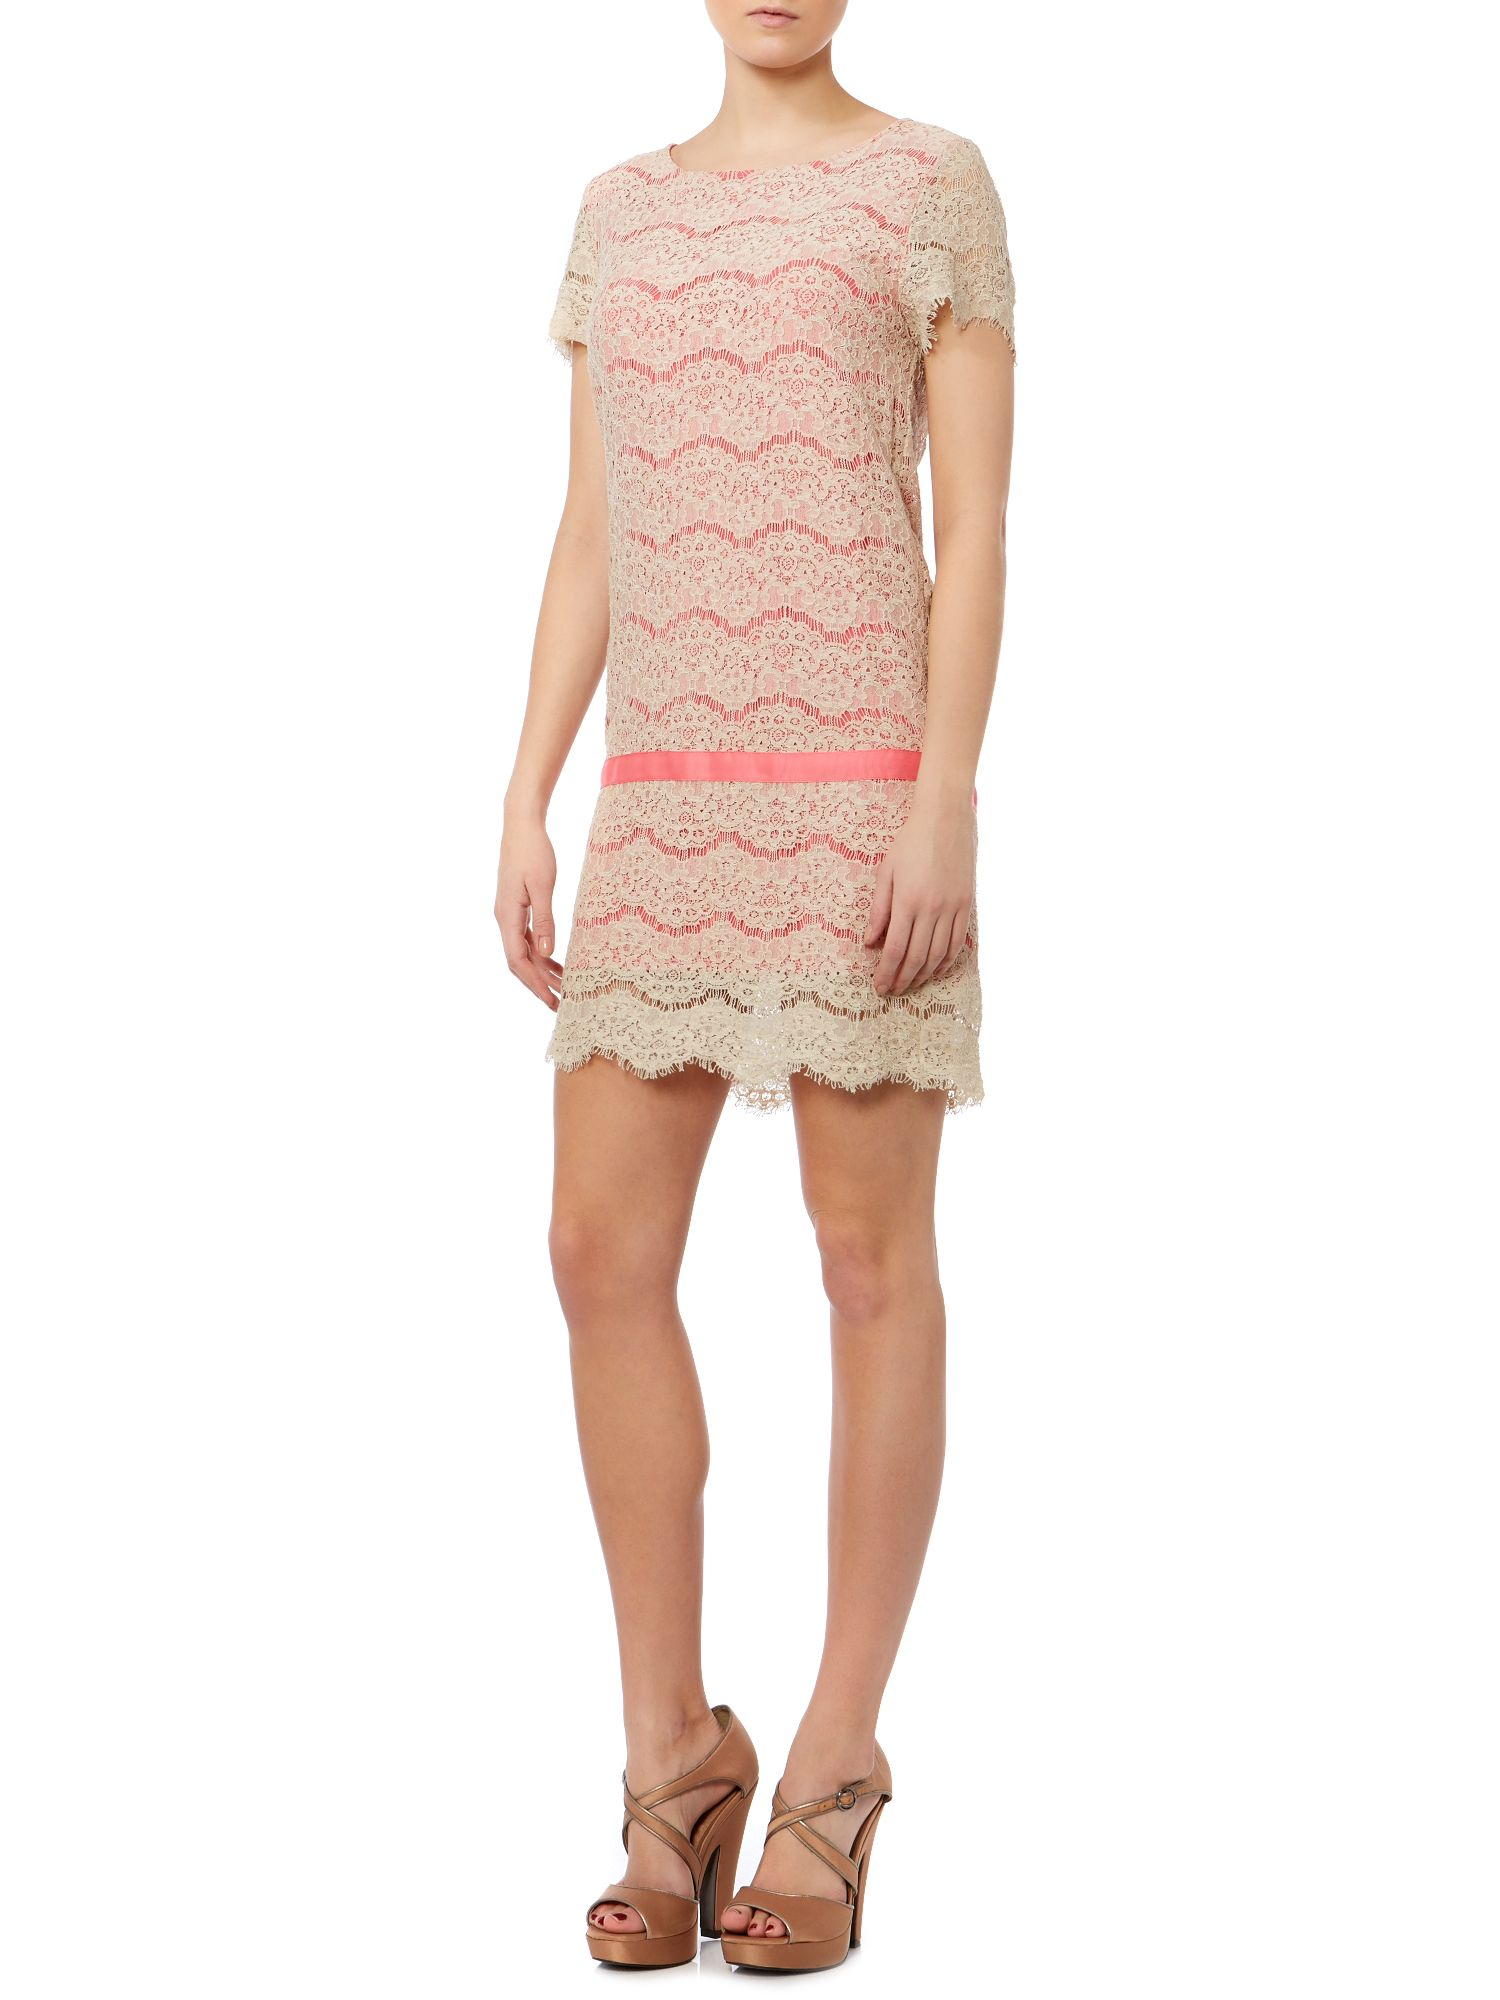 Grana contrast colour shift dress in lace